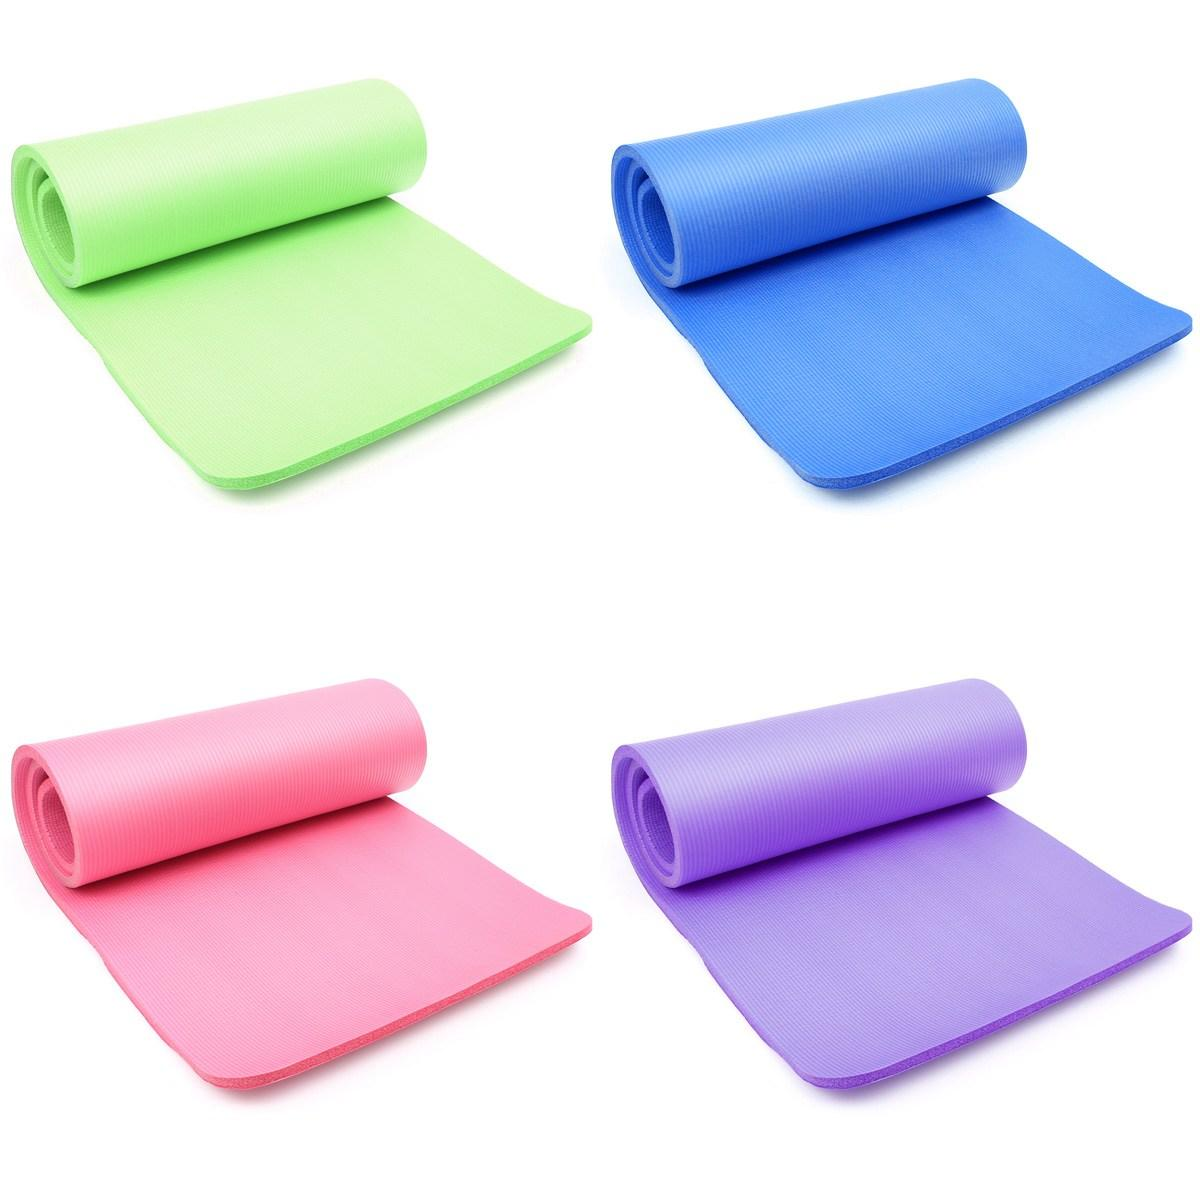 p foam wakeman x accessories exercise blue mat fitness in thick mats extra